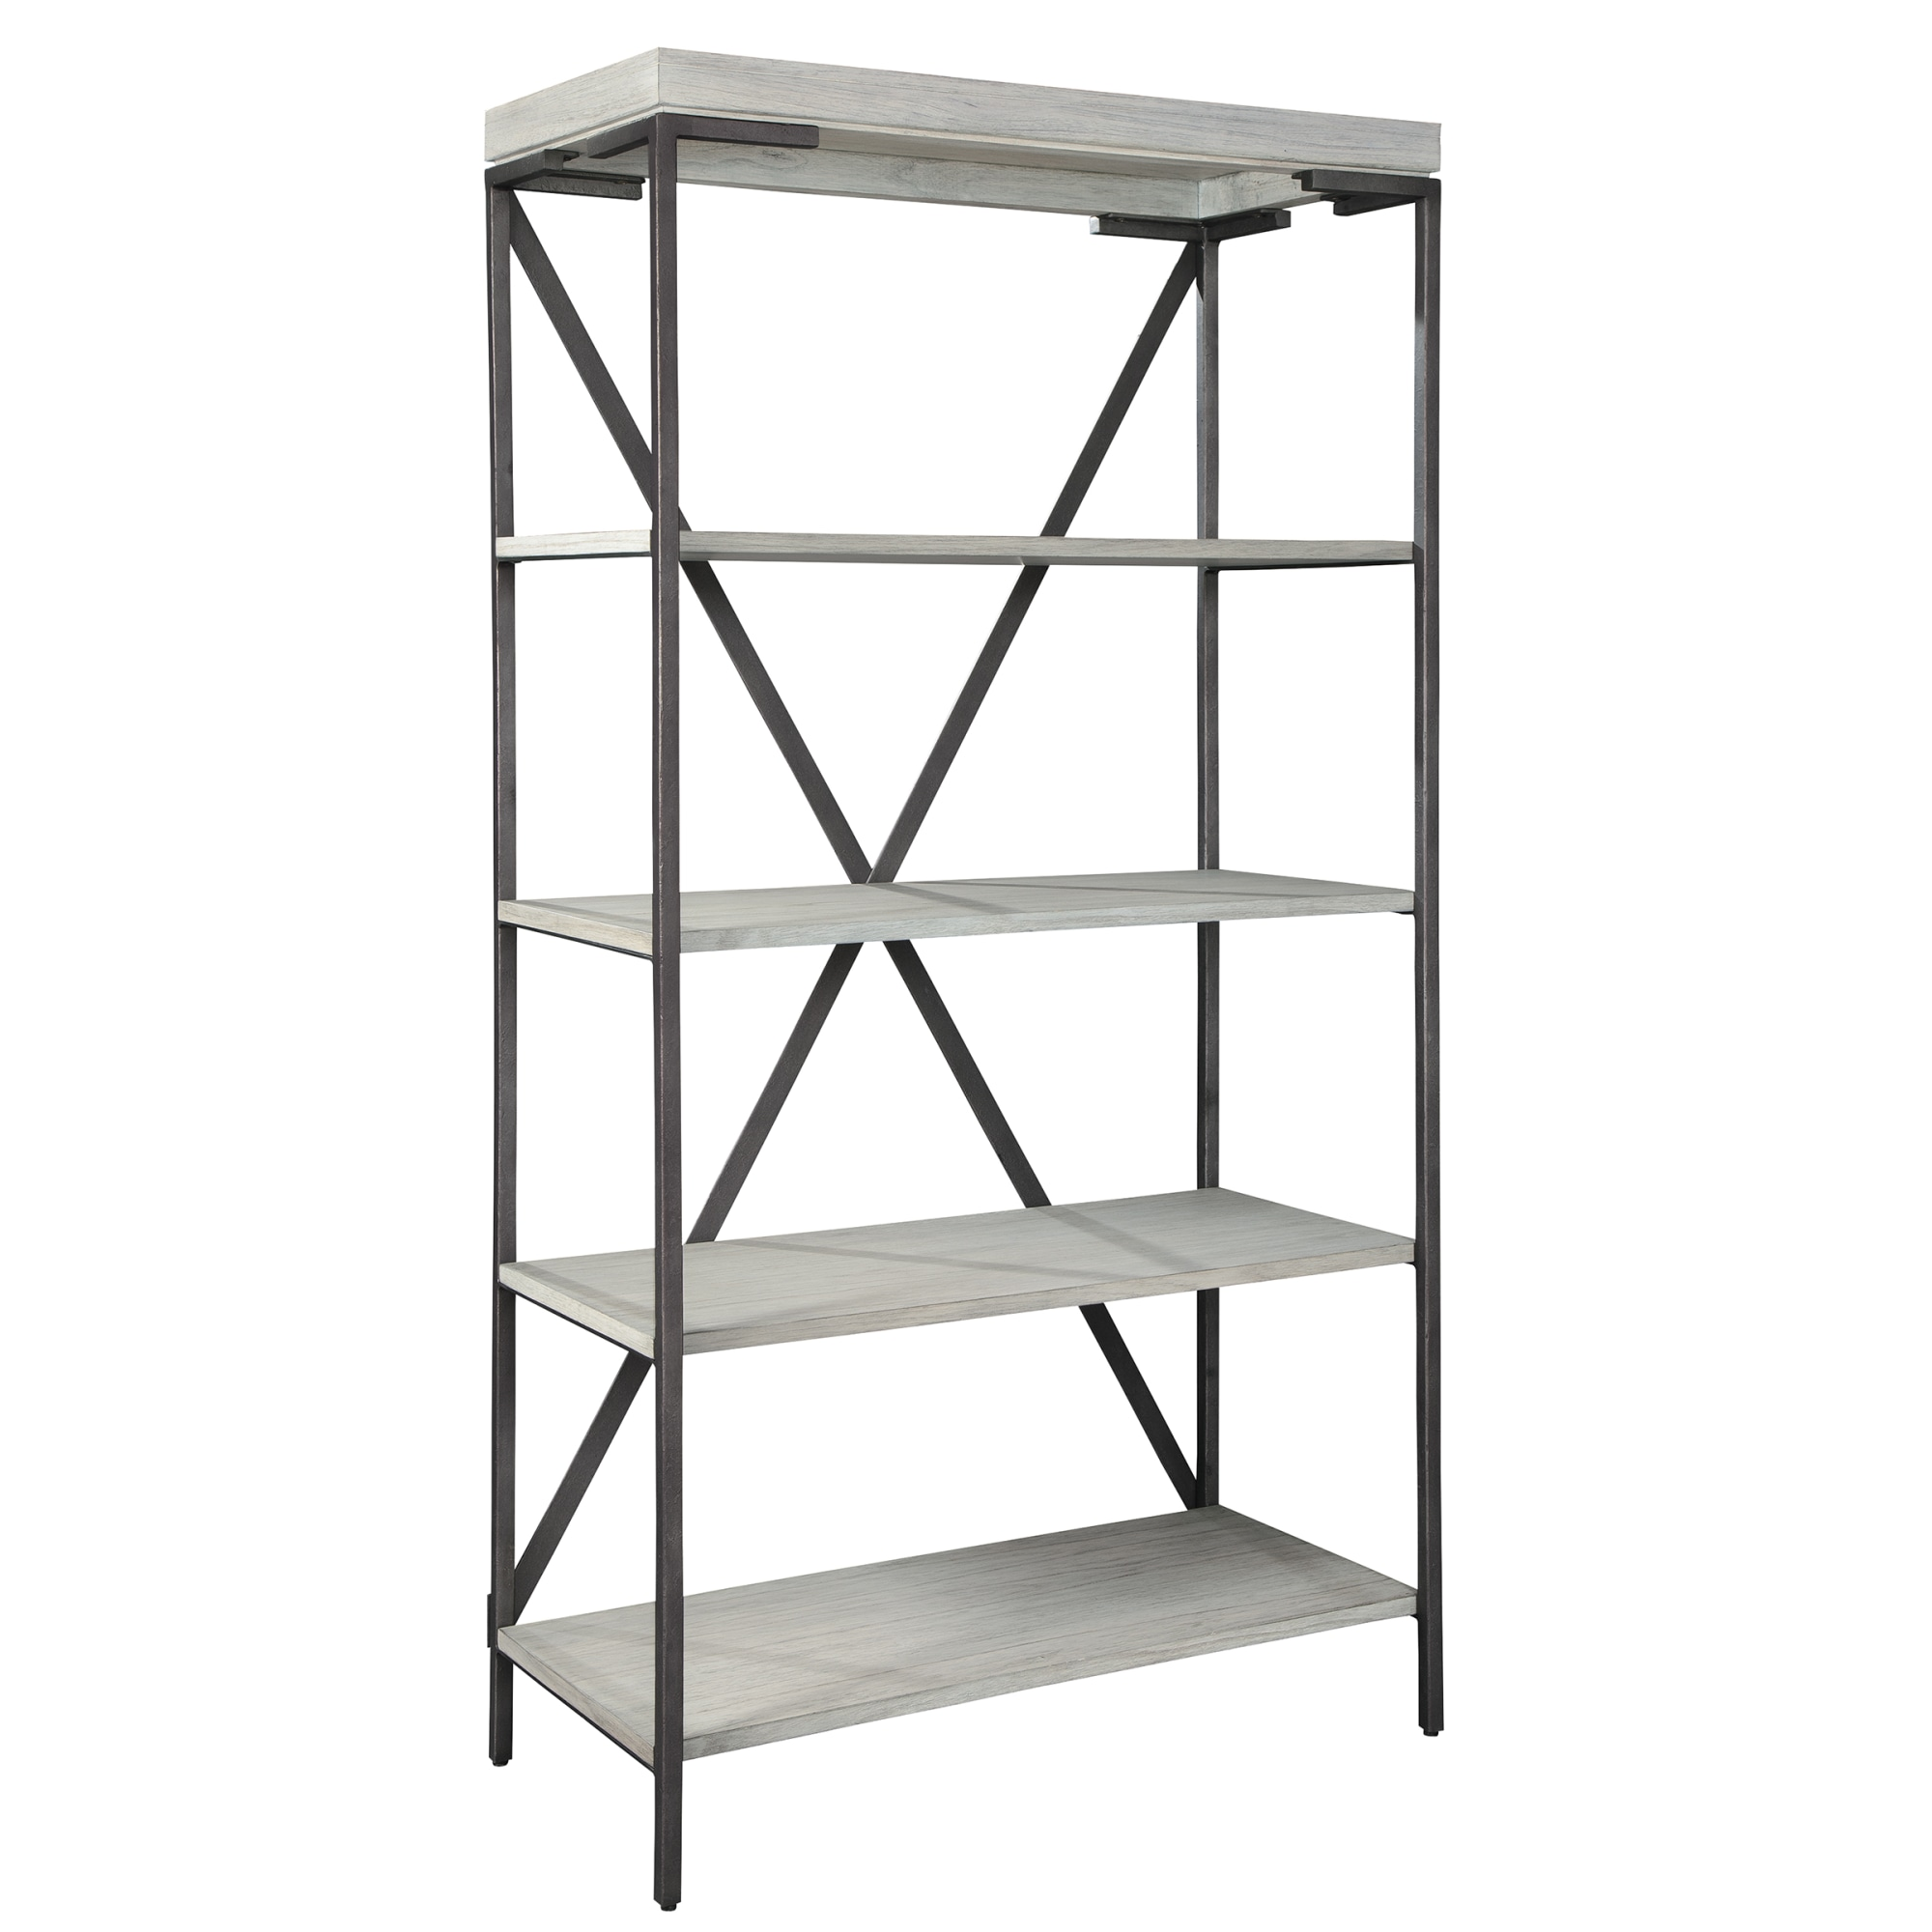 Image for 2-4109 office@home Sierra Open Shelving from Hekman Official Website